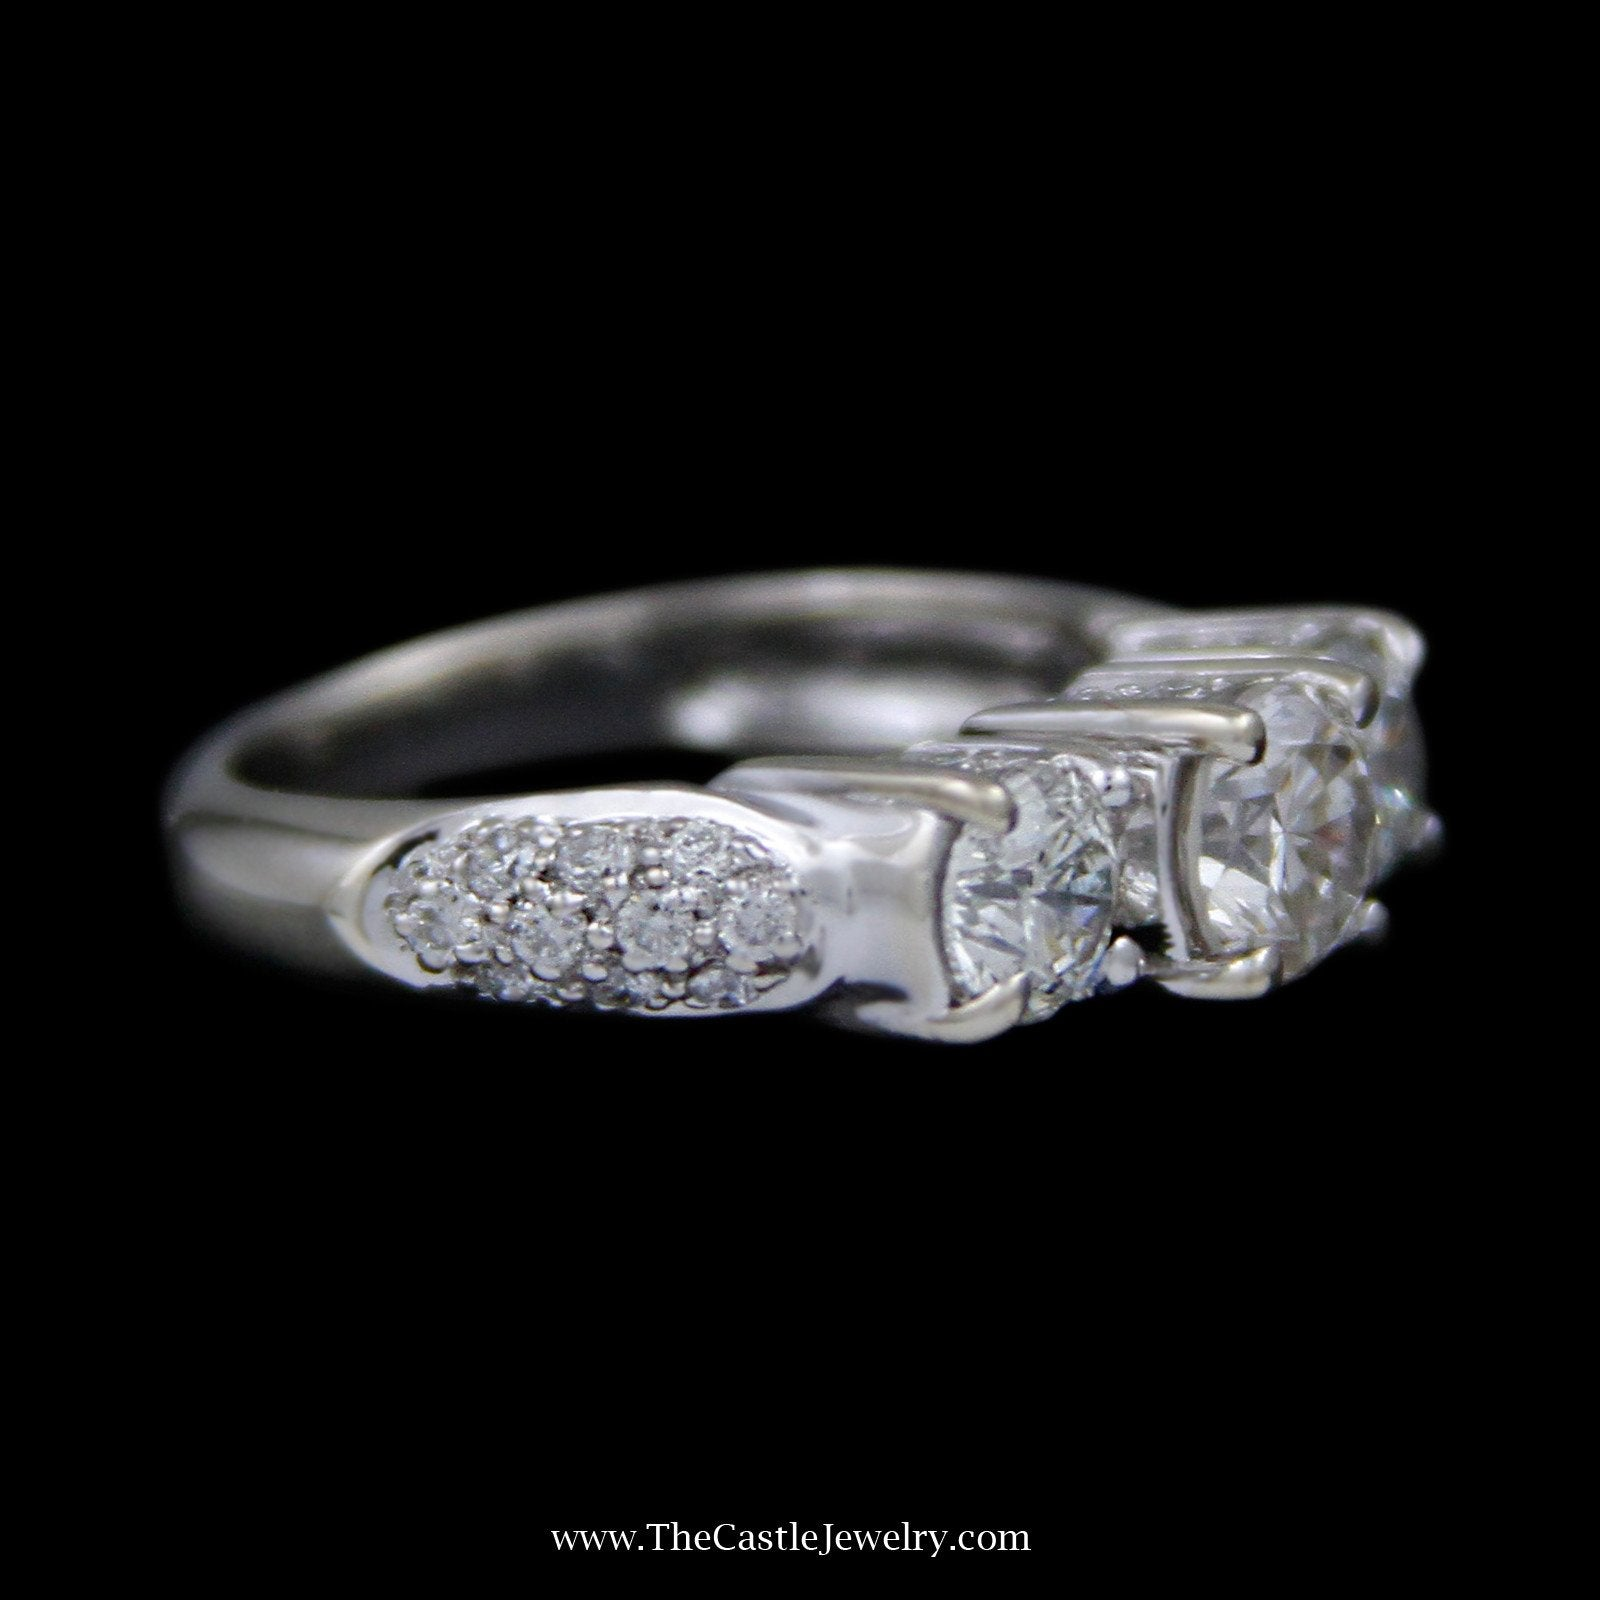 DeBeers Style Ring 3 Round Diamond Ring in Pave Set Round Diamond Mounting in 18k White Gold-2